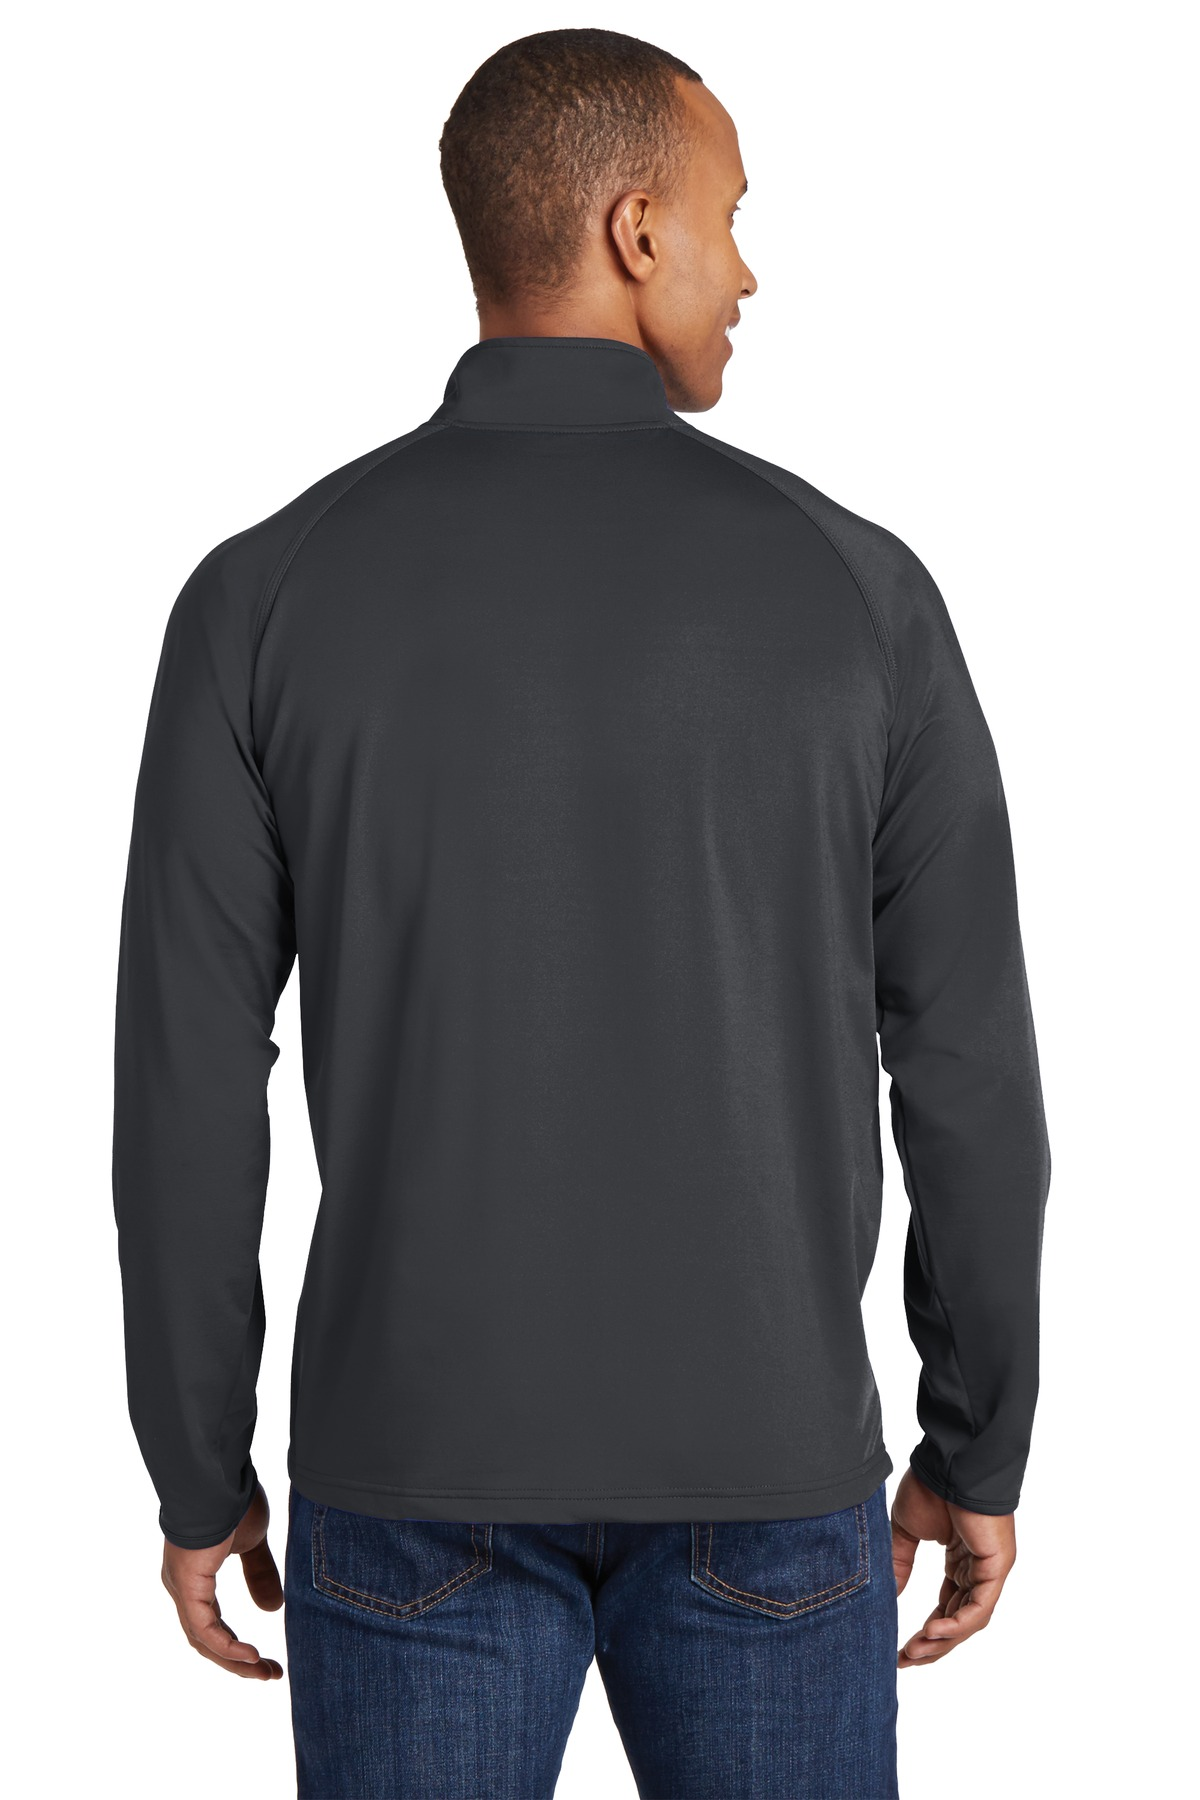 """That's Who We R"" Mens Sport Stretch 1/2 Zip Pullover - TCG1130"